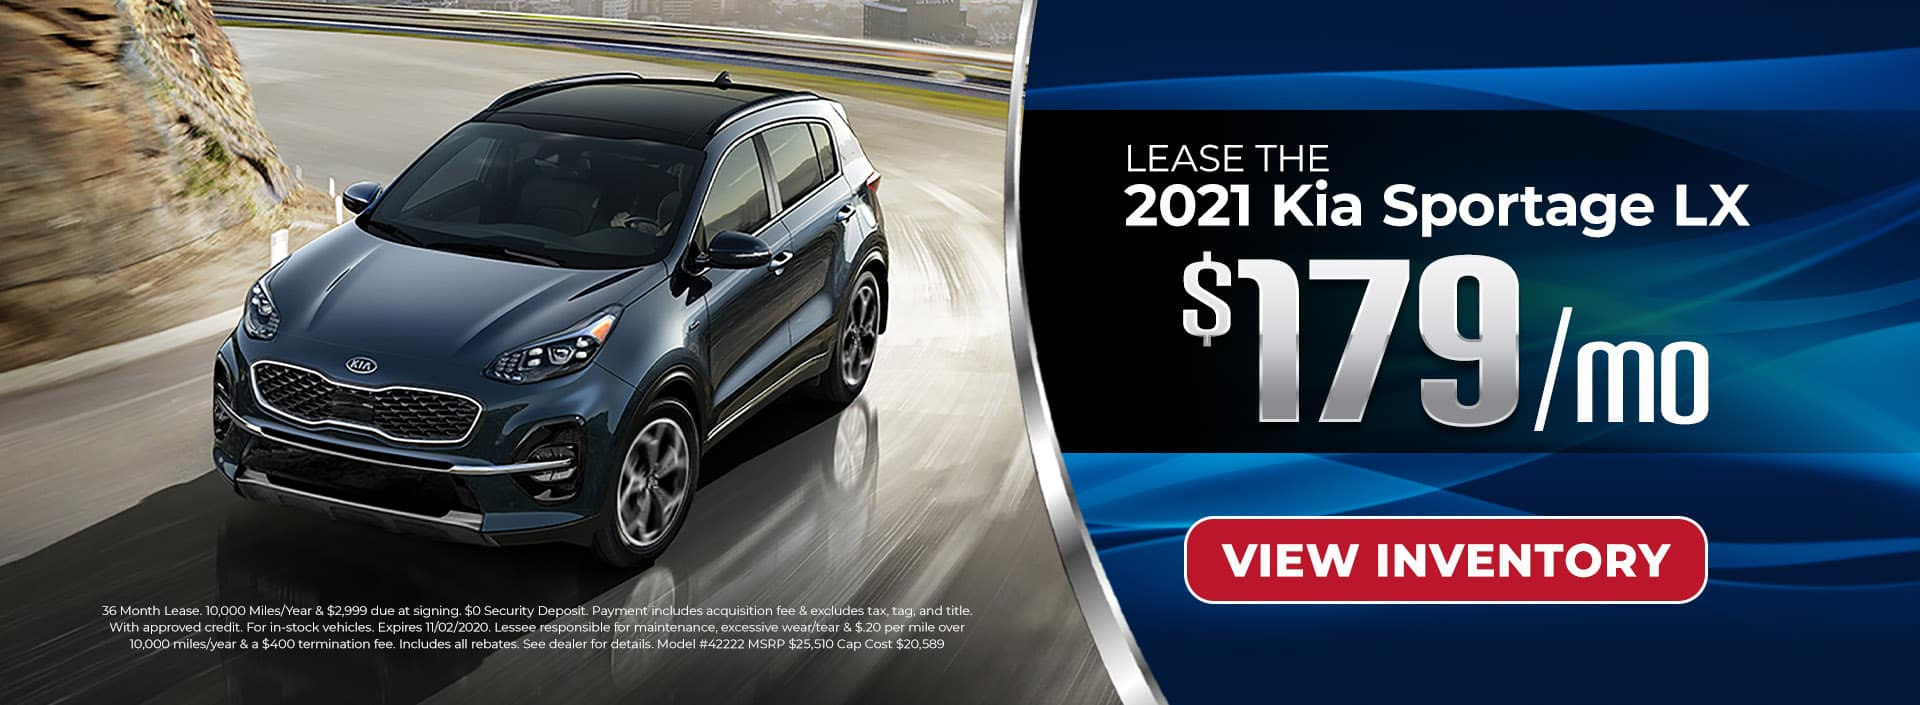 Lease 2021 Kia Sportage for $179/mo